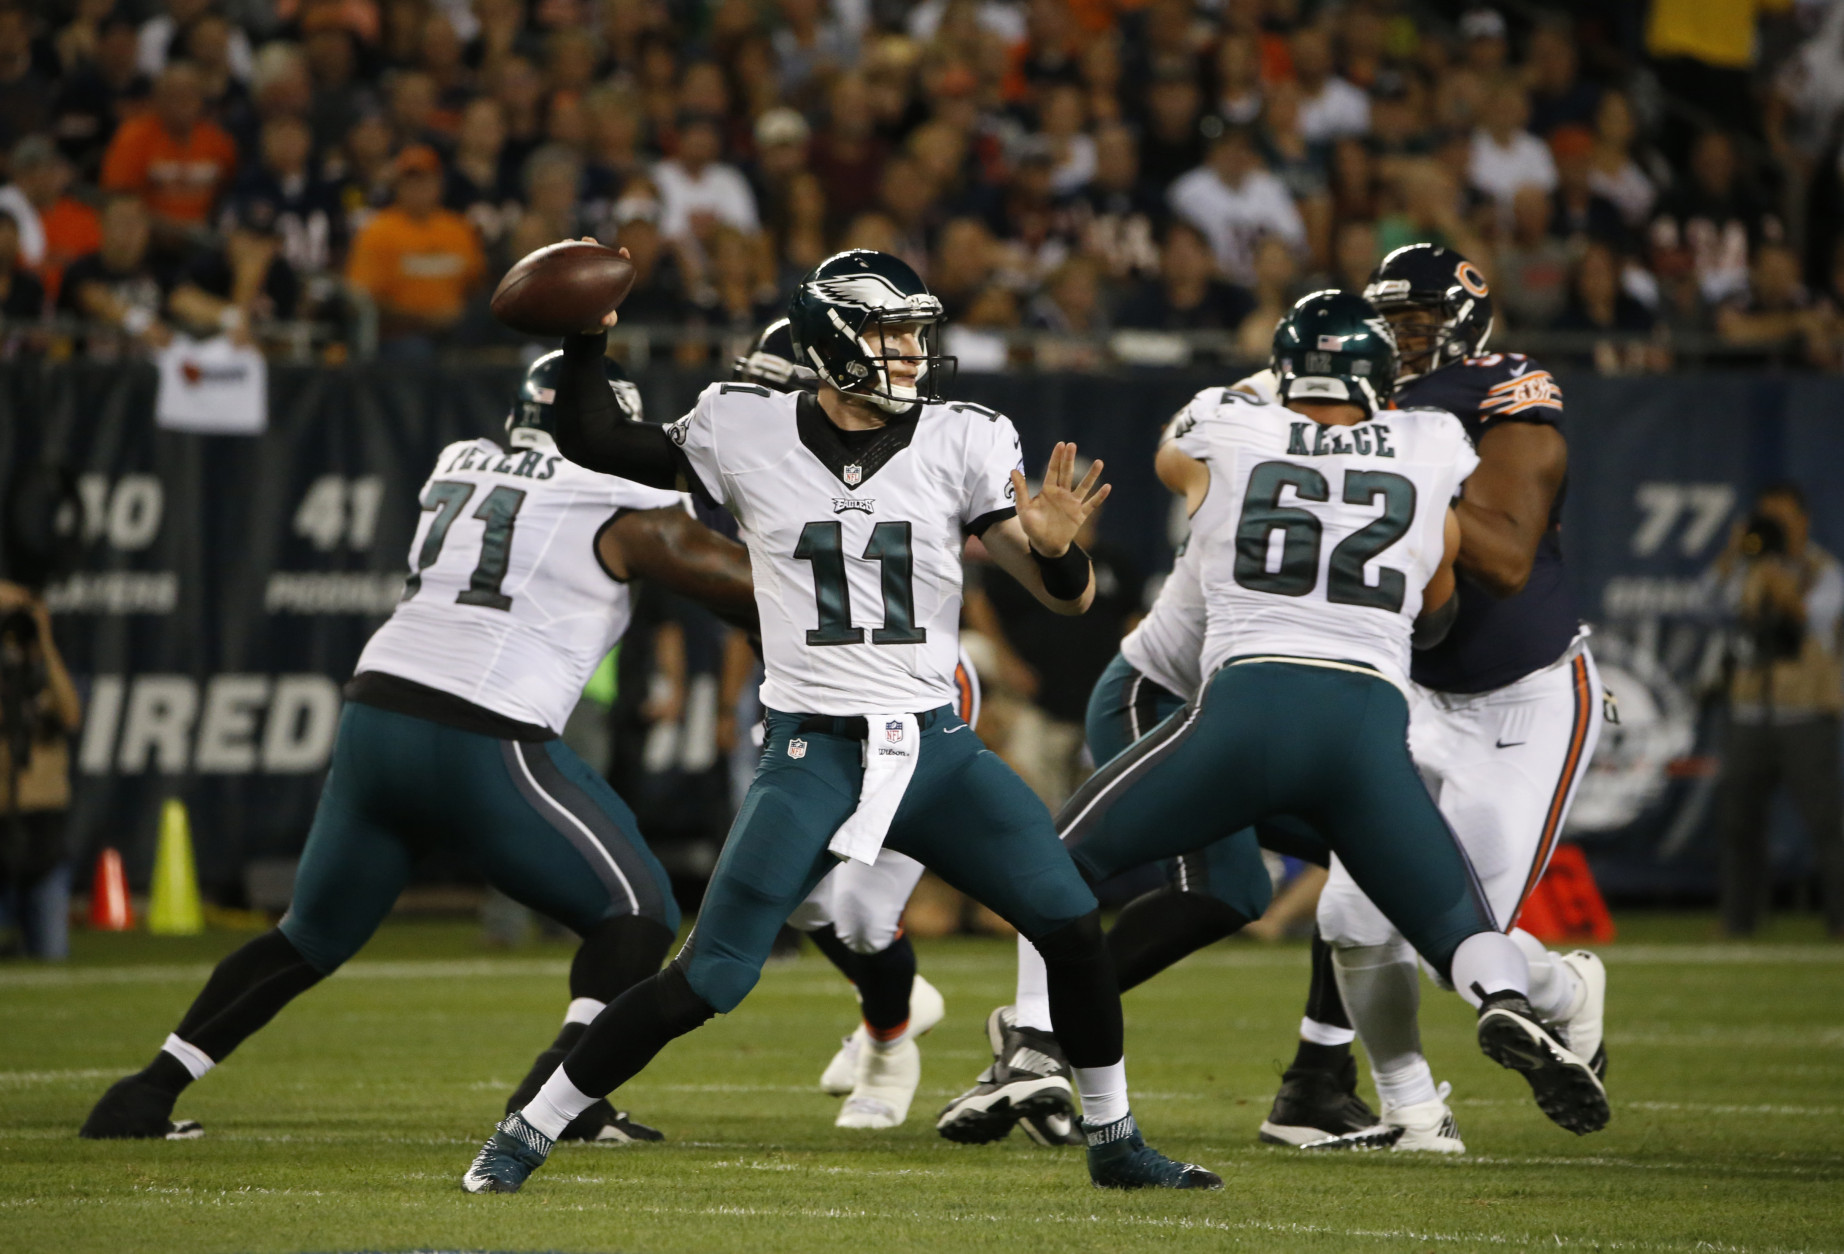 Philadelphia Eagles quarterback Carson Wentz (11) throws a pass during the first half of an NFL football game against the Chicago Bears, Monday, Sept. 19, 2016, in Chicago. (AP Photo/Nam Y. Huh)